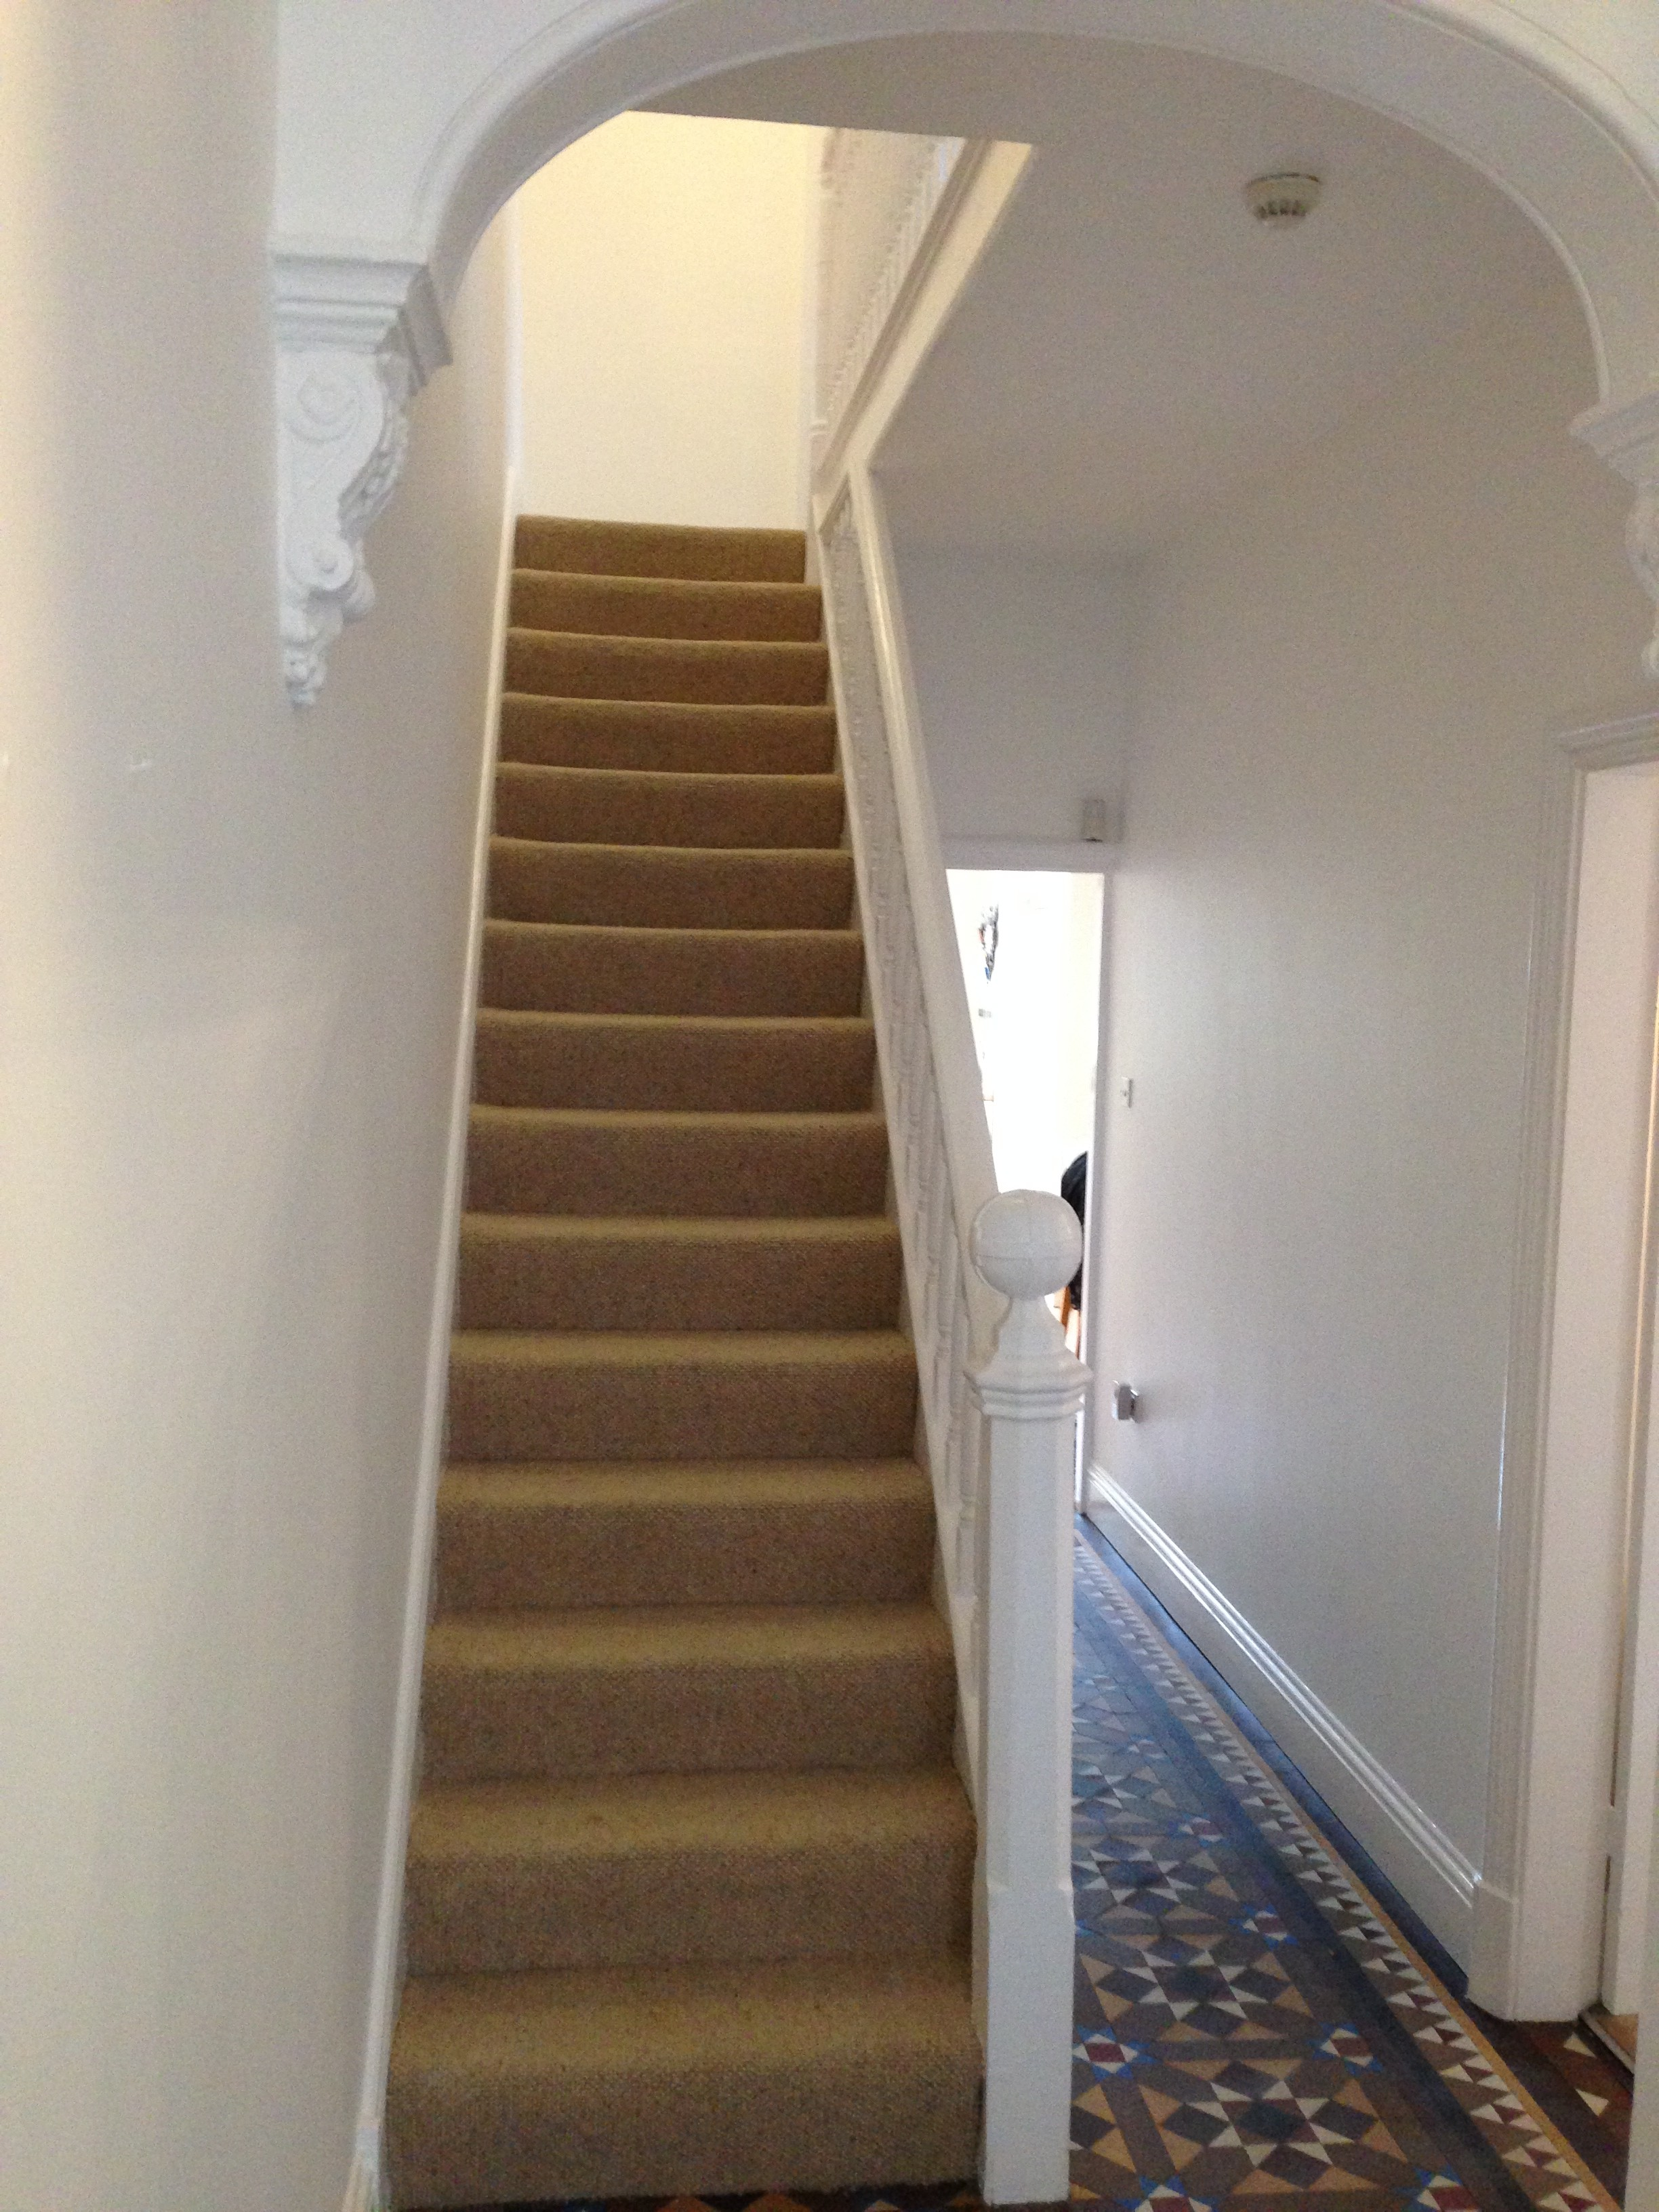 Painter and decorator Nottingham, Painting and decorating Nottingham Domestic commercial